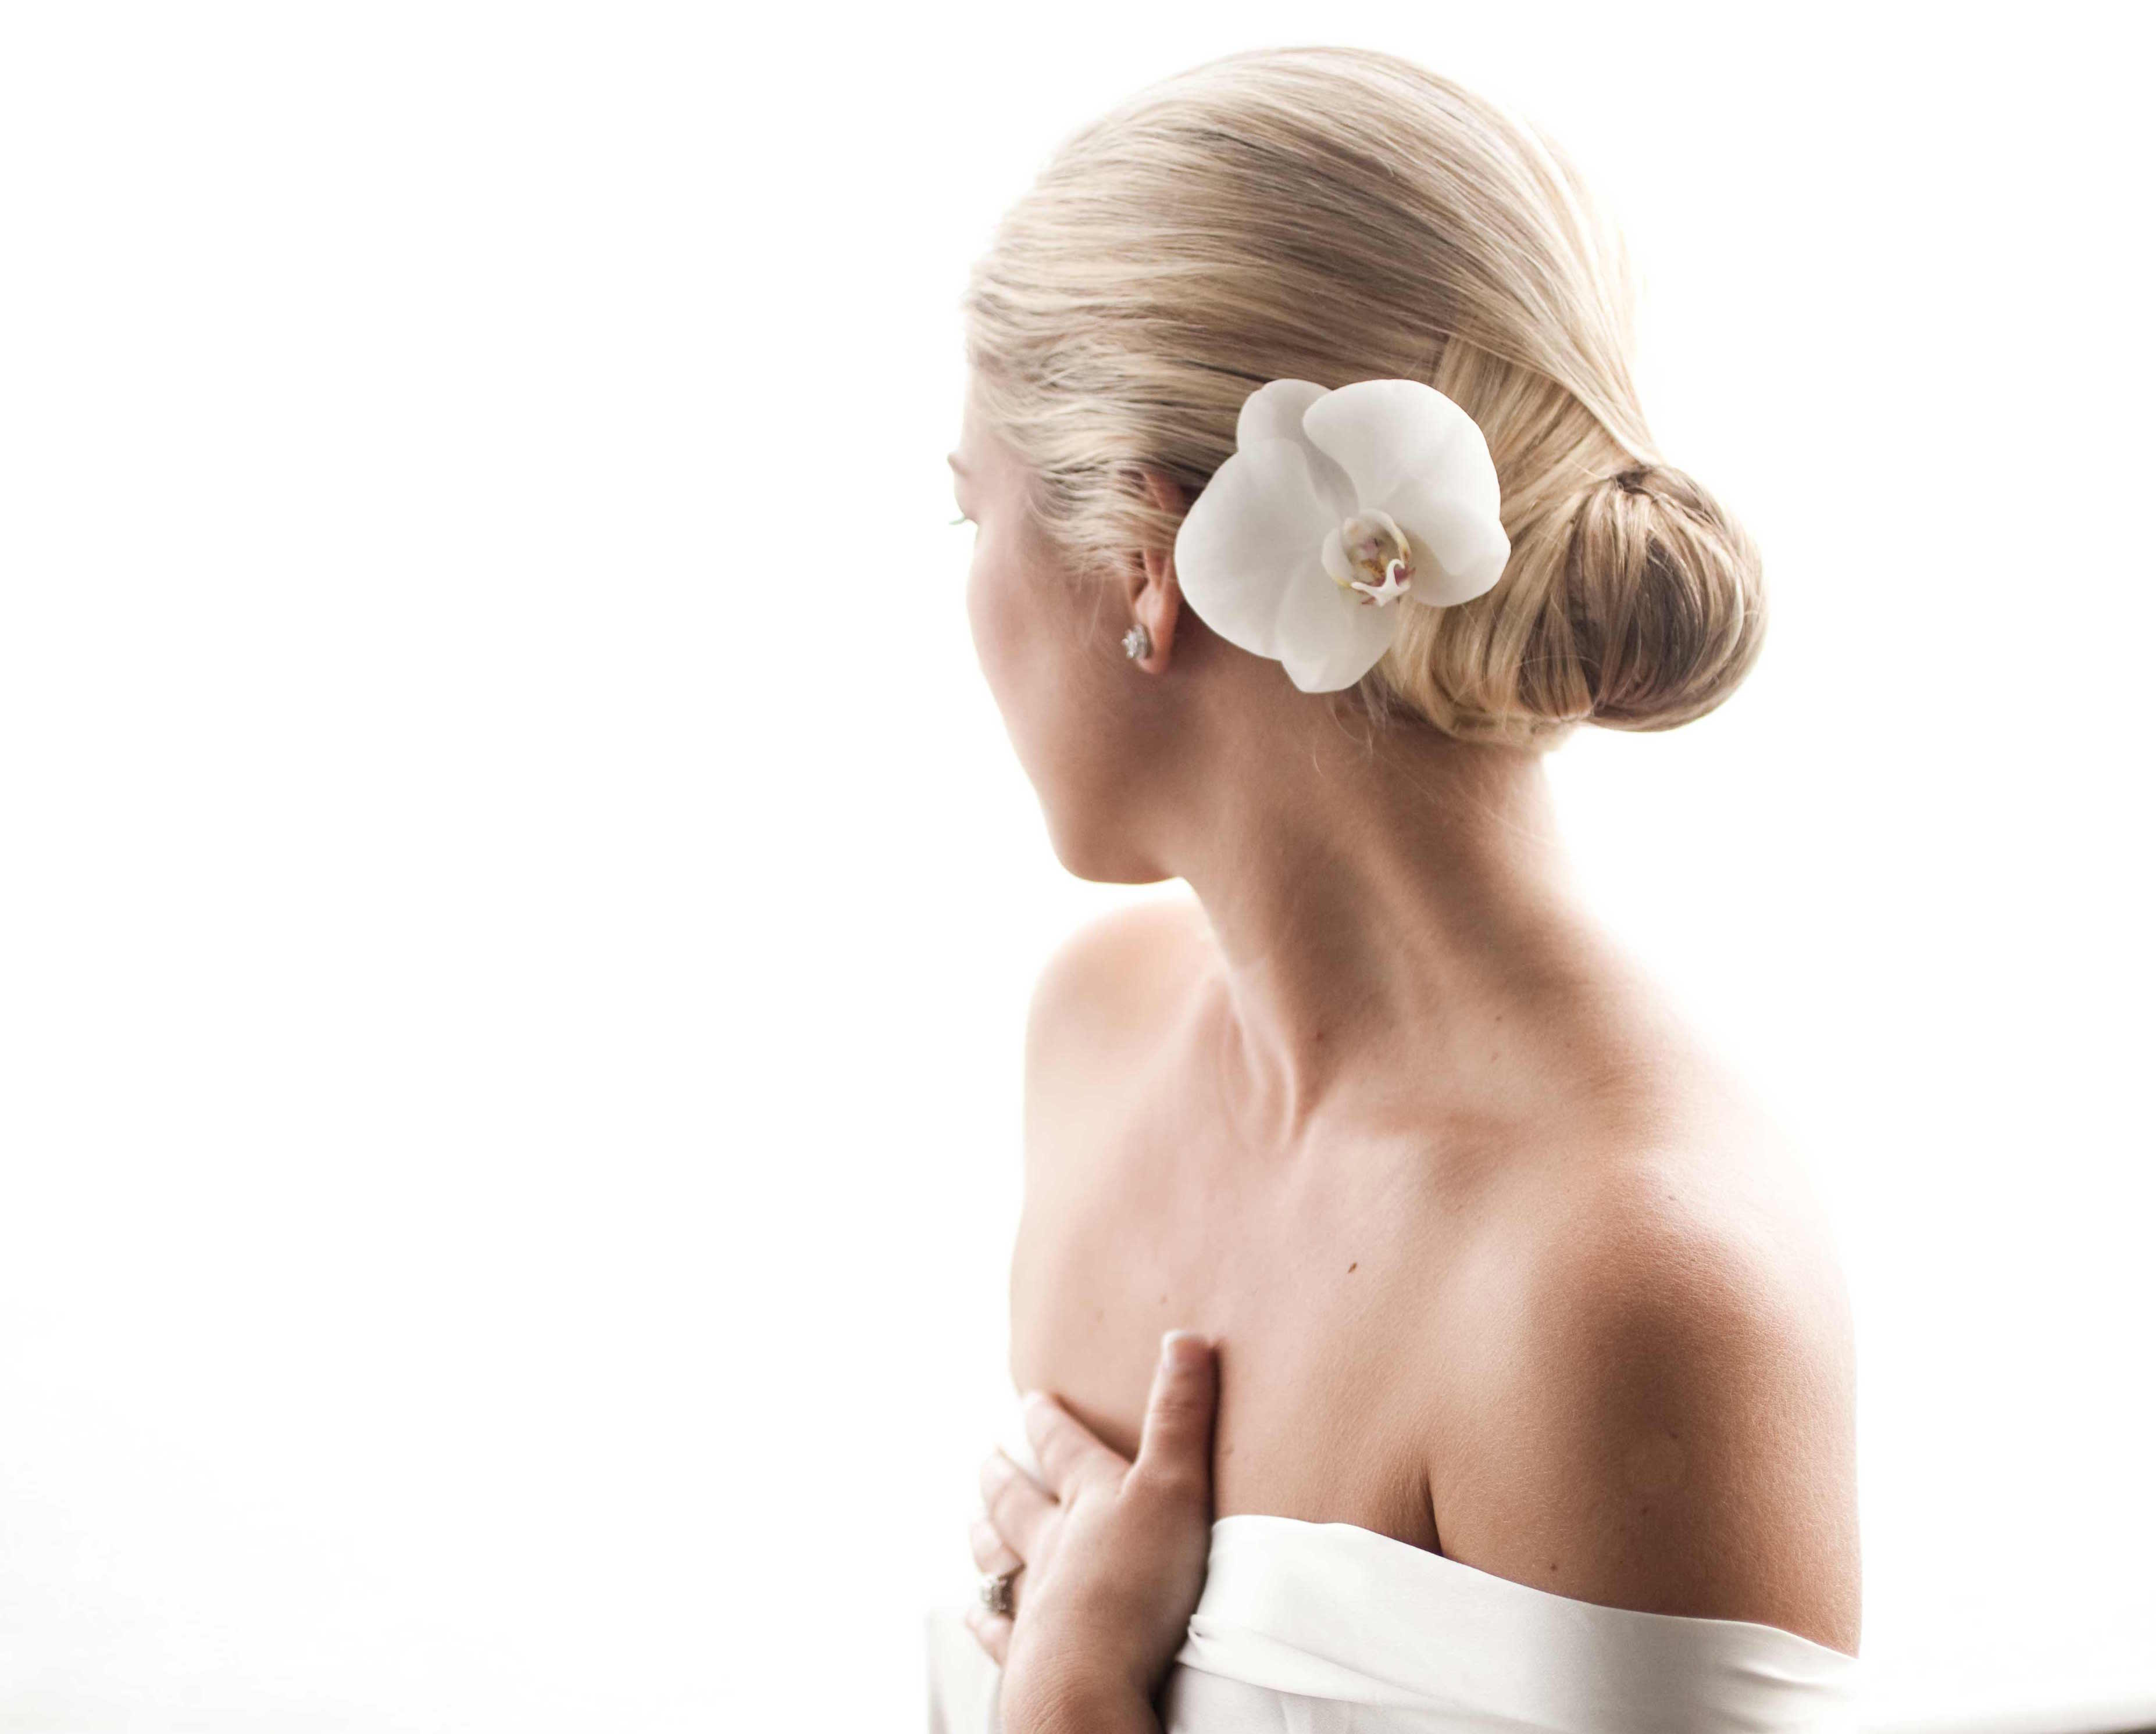 White orchid flower in bride's wedding hairstyle